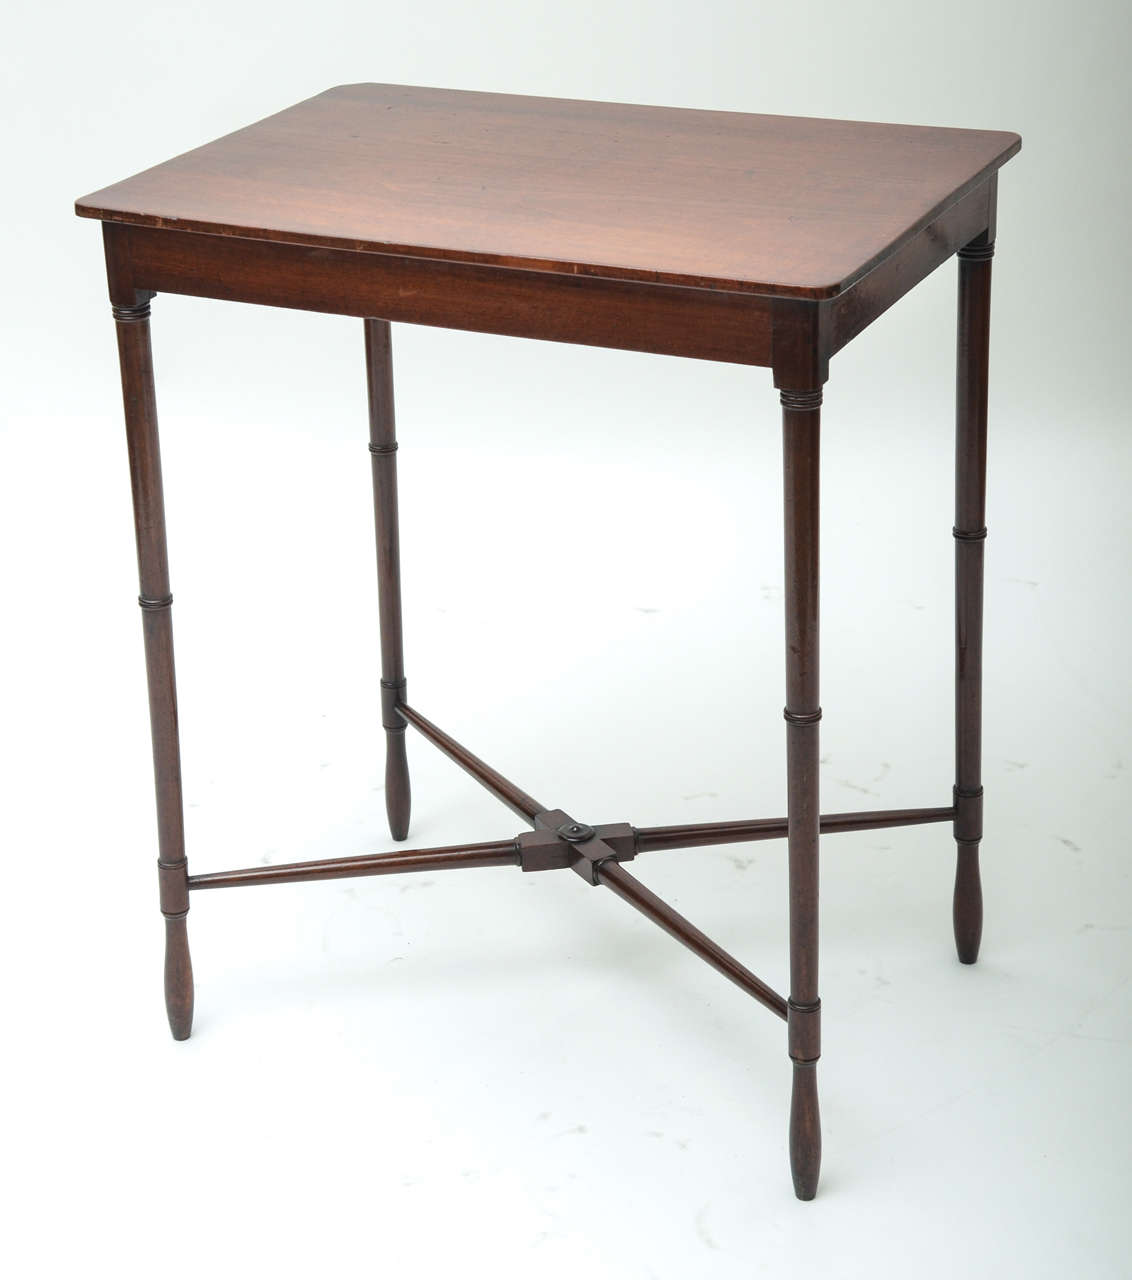 A period table with cross-stretcher and ring-turned legs.